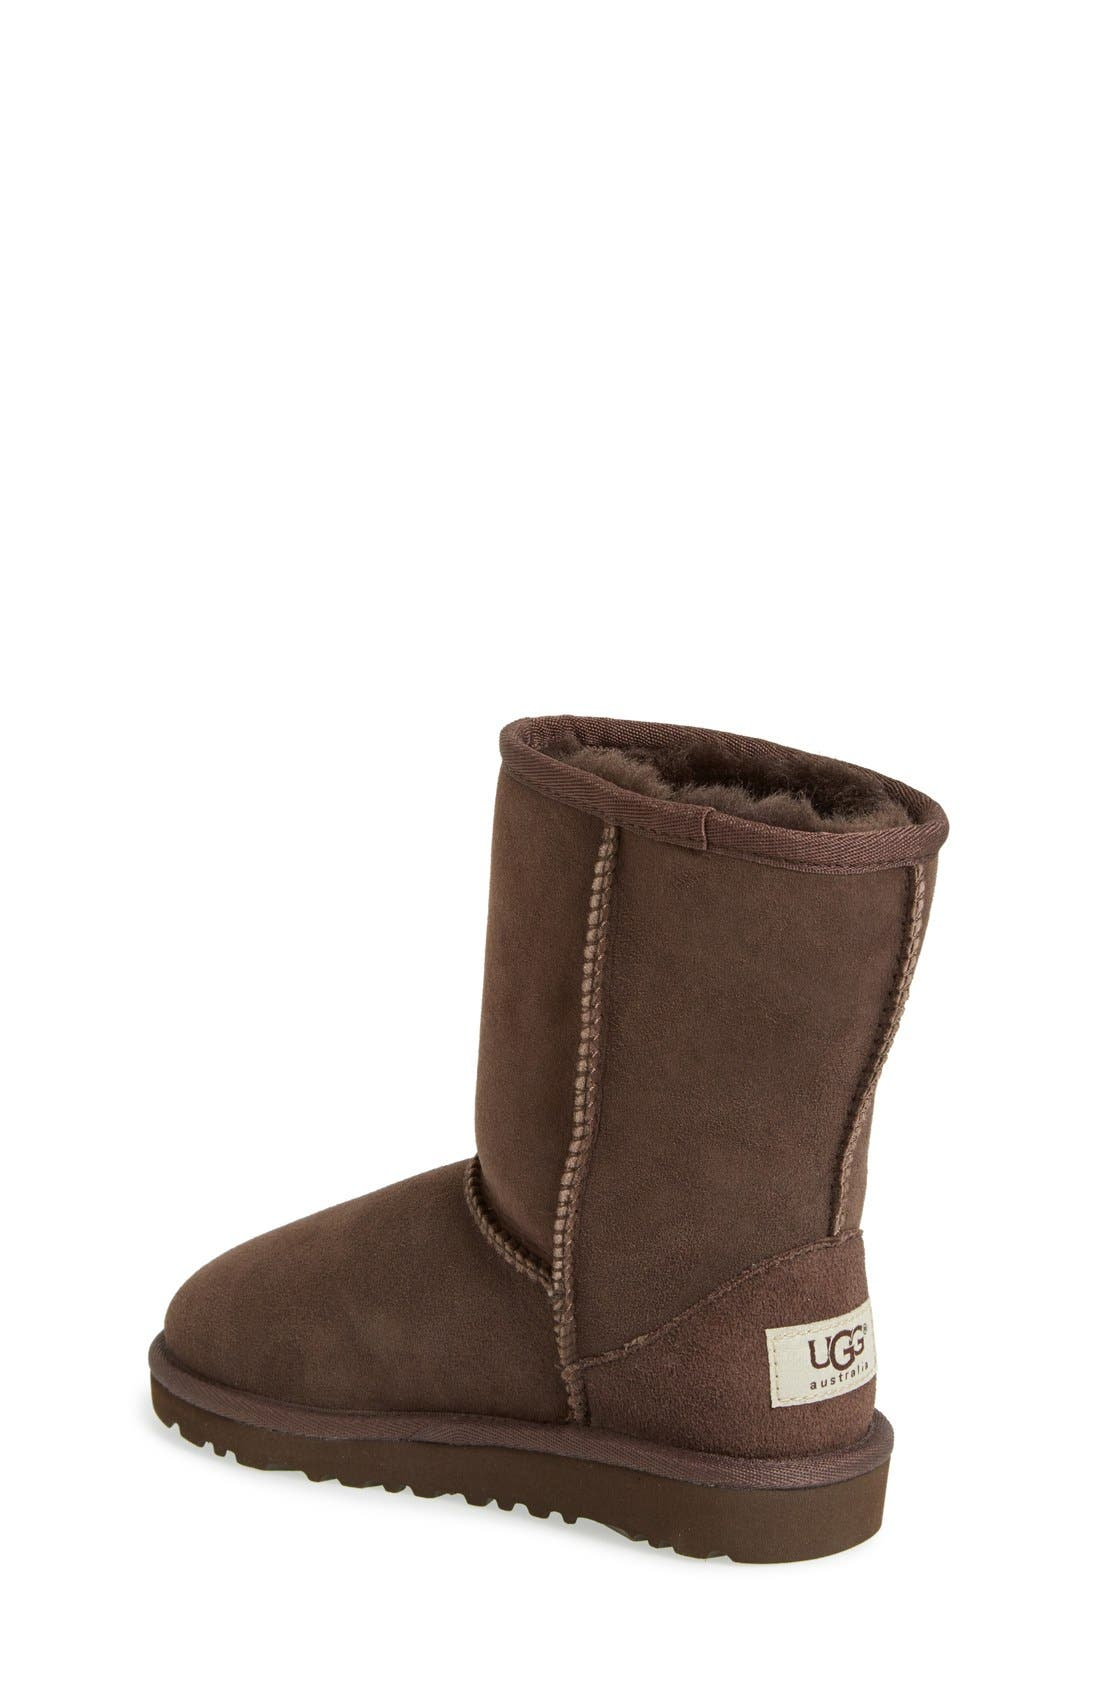 Alternate Image 2  - UGG® Classic Short Boot (Walker, Toddler, Little Kid & Big Kid)